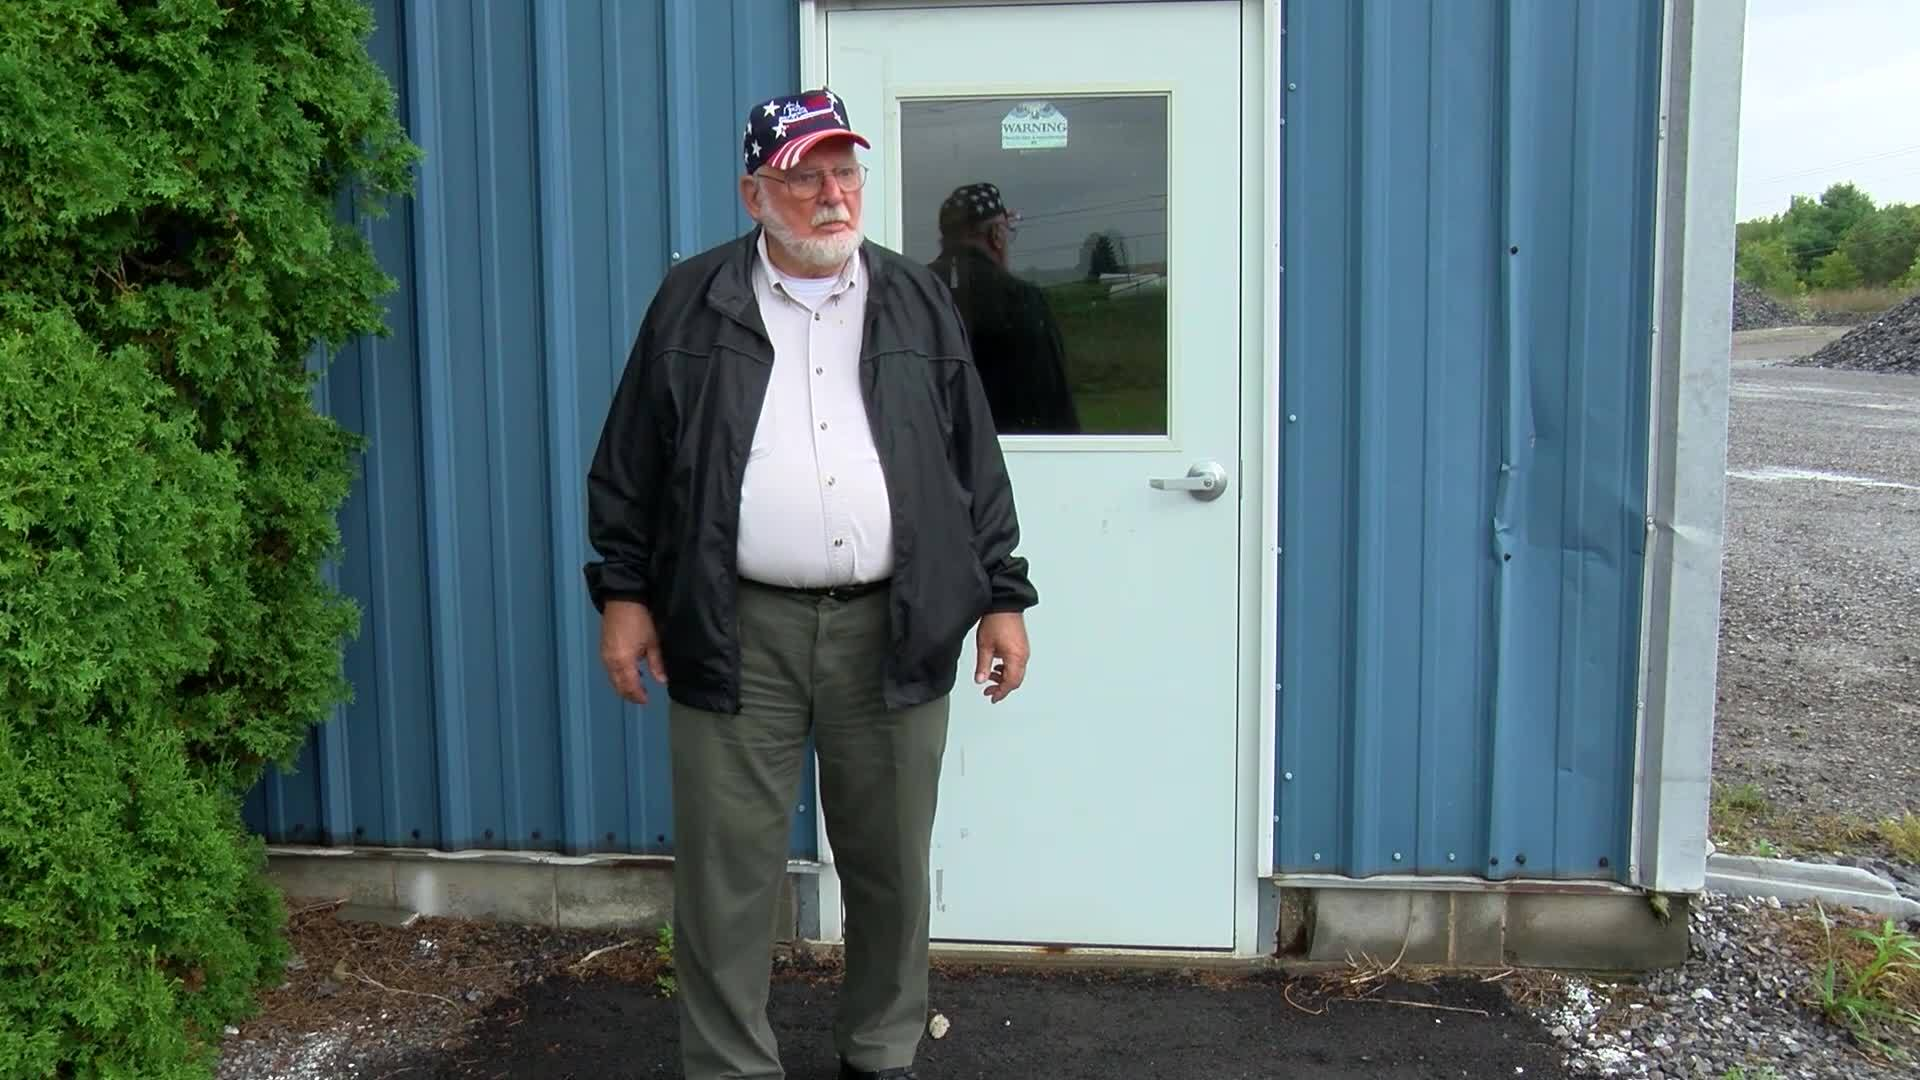 Voting_problems_in_Clearfield_County__0_20180926213003